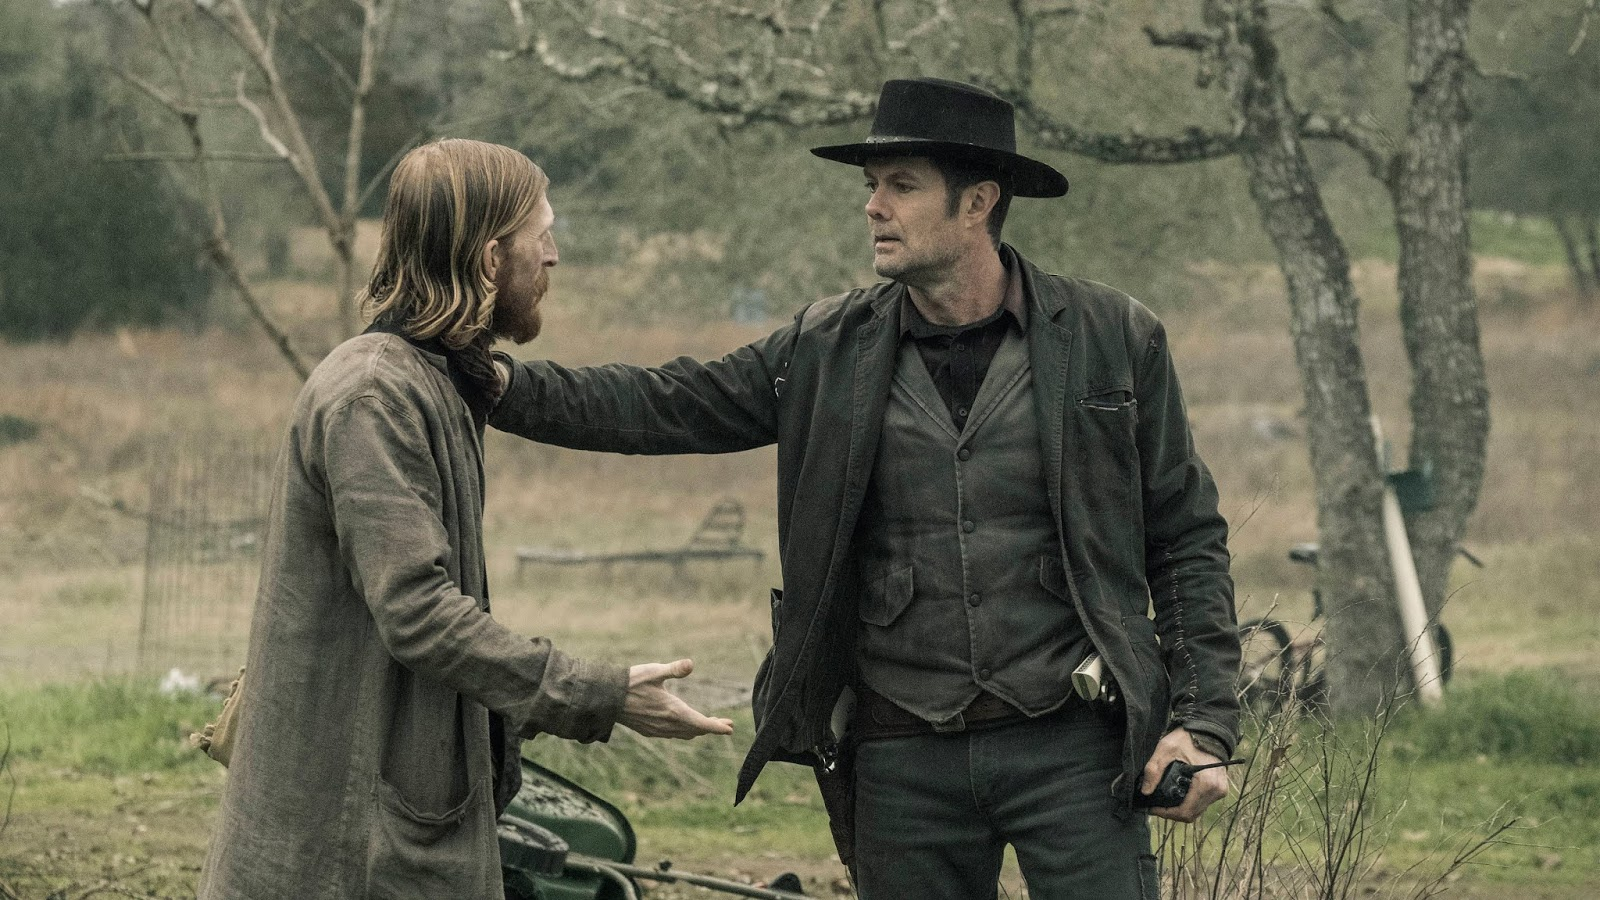 Dwight y John Dorie en el episodio 5x06 Tje Little Prince de Fear The Walking Dead